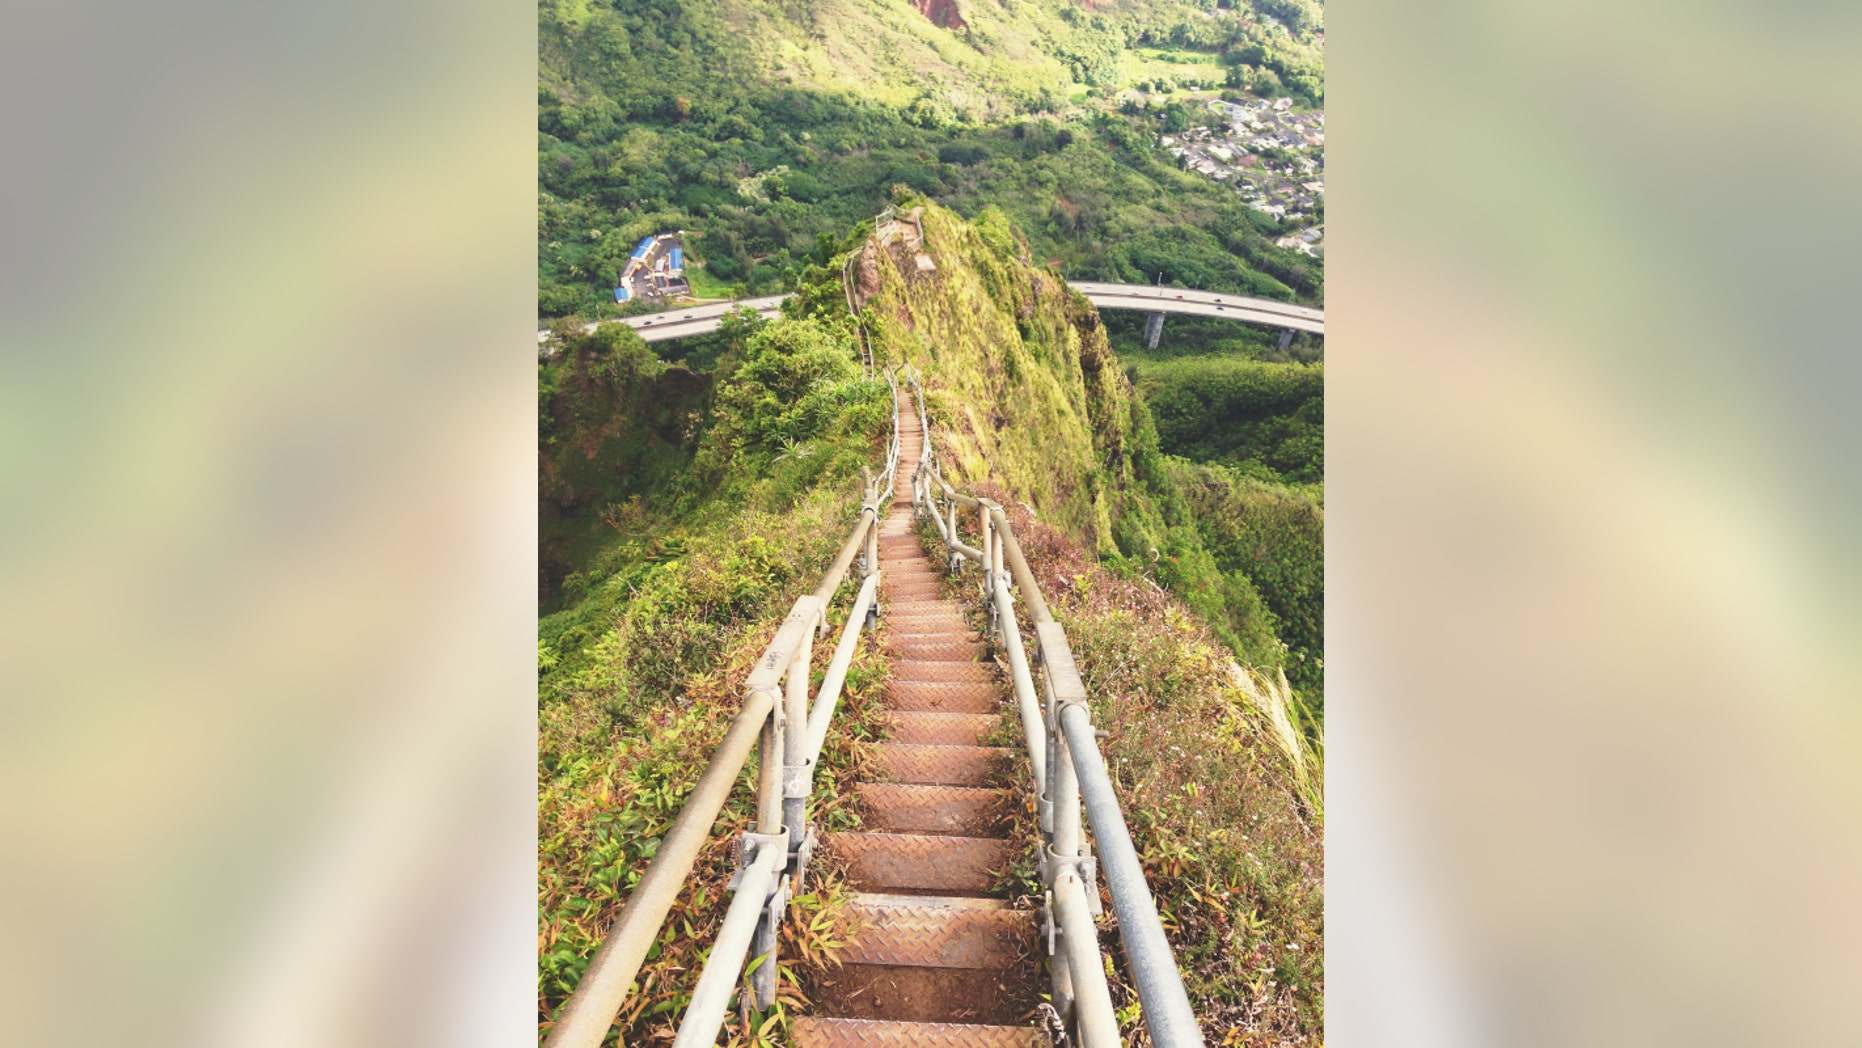 The Haiku Stairs on the Hawaiian island of Oahu are an illegal tourist attraction.